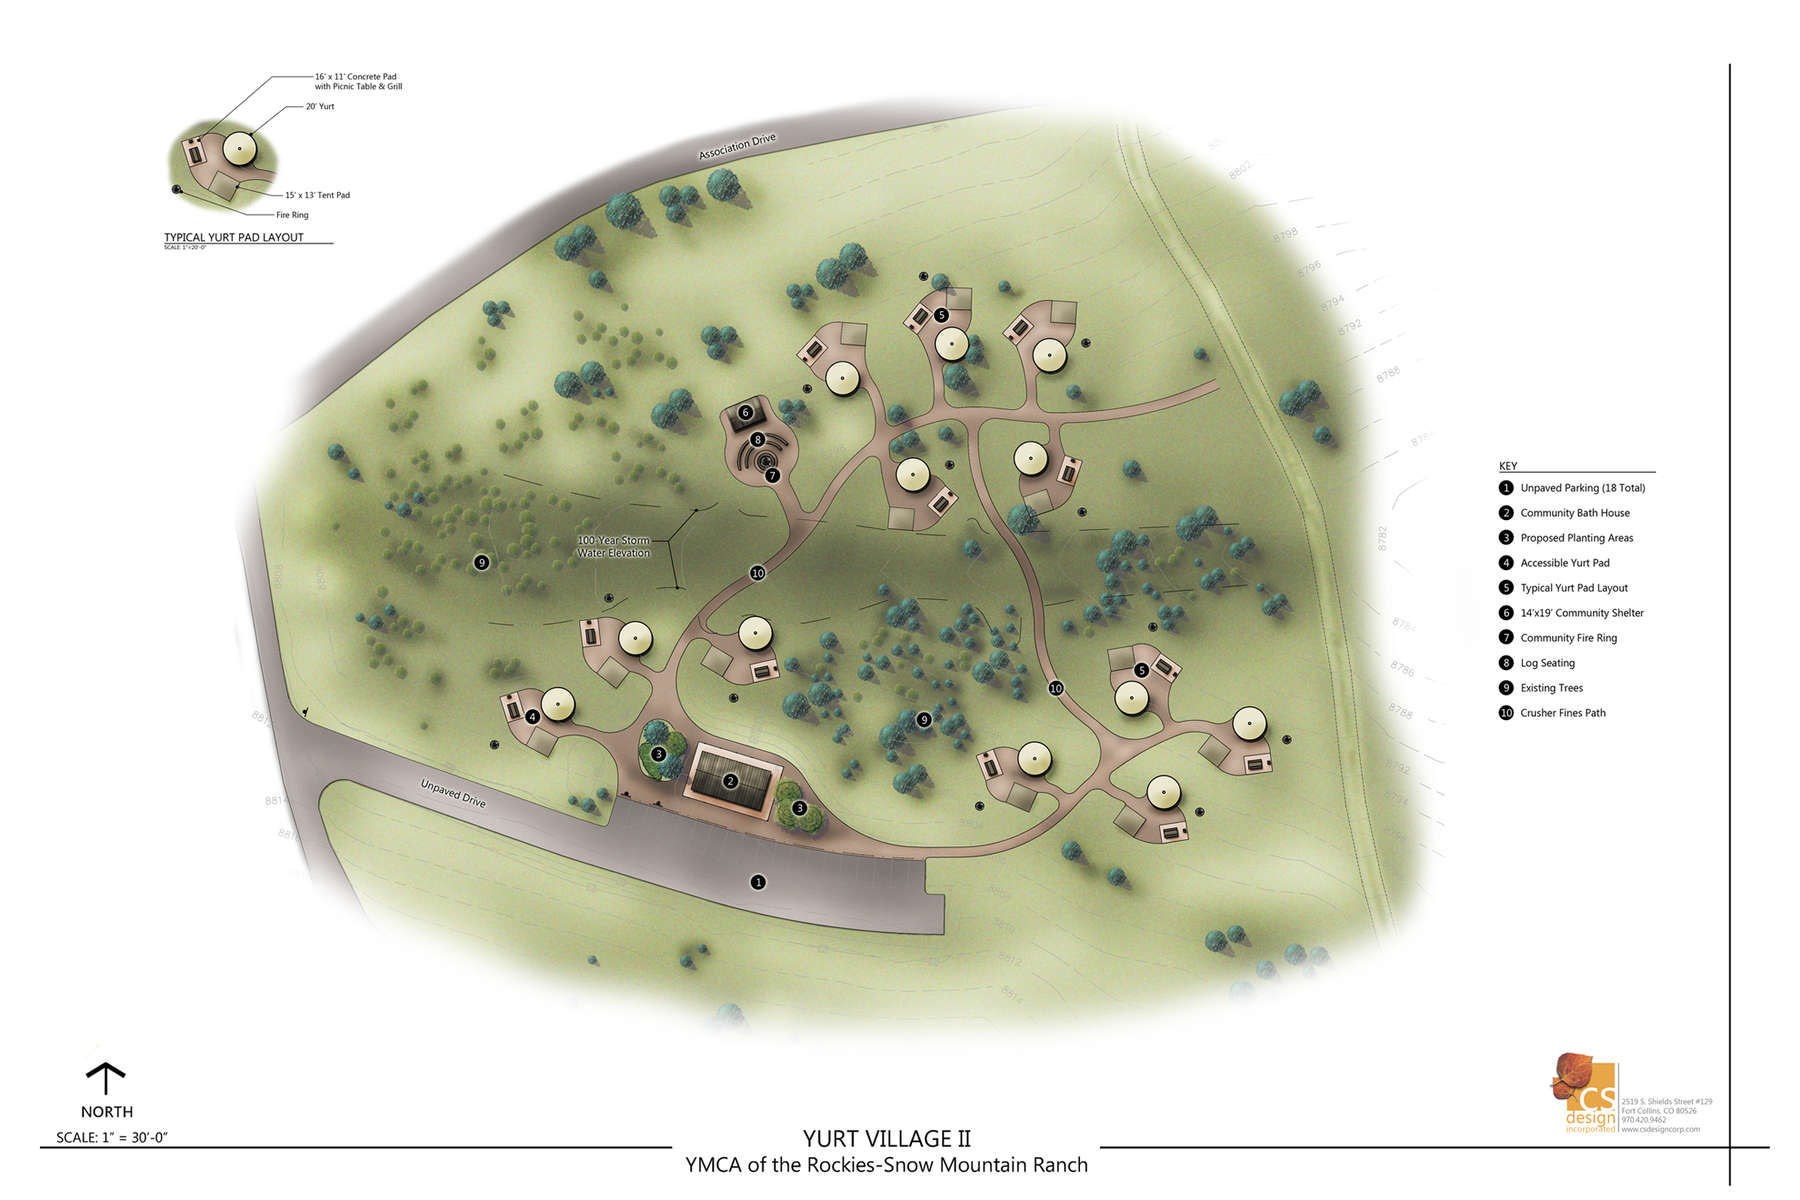 Rendered site plan of the Yurt Village